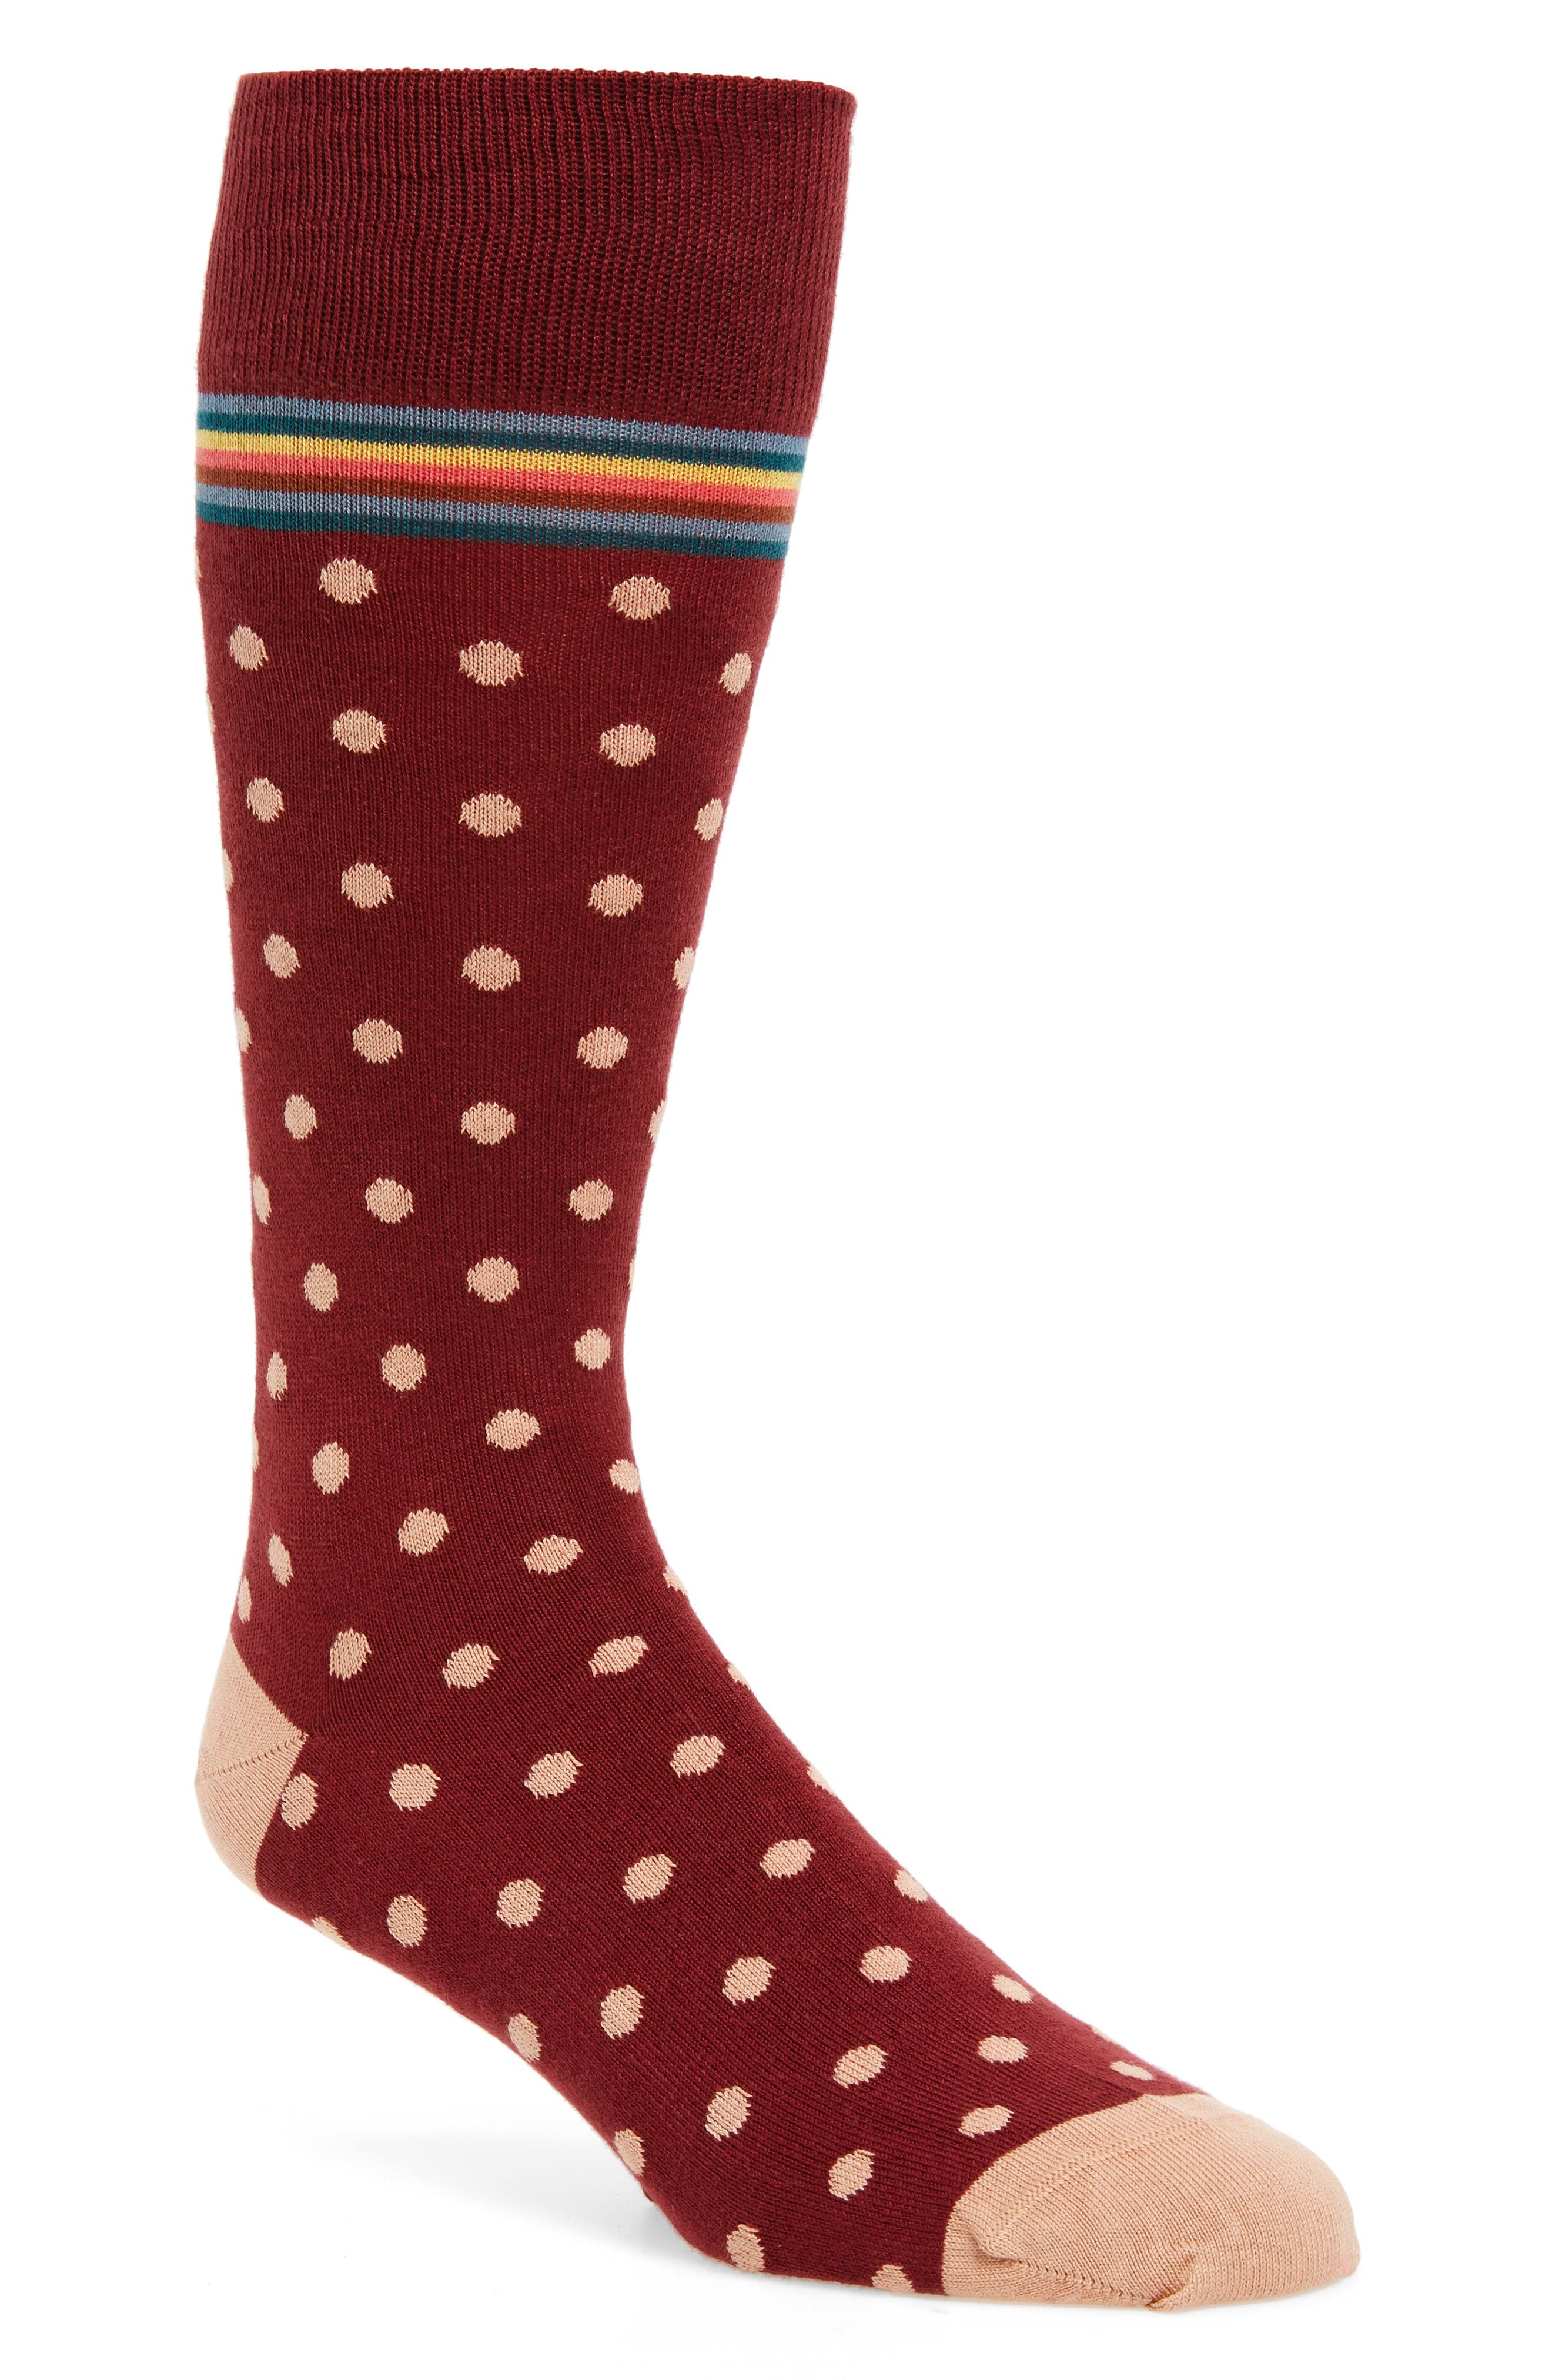 Paul Smith Signature Polka Dot Socks